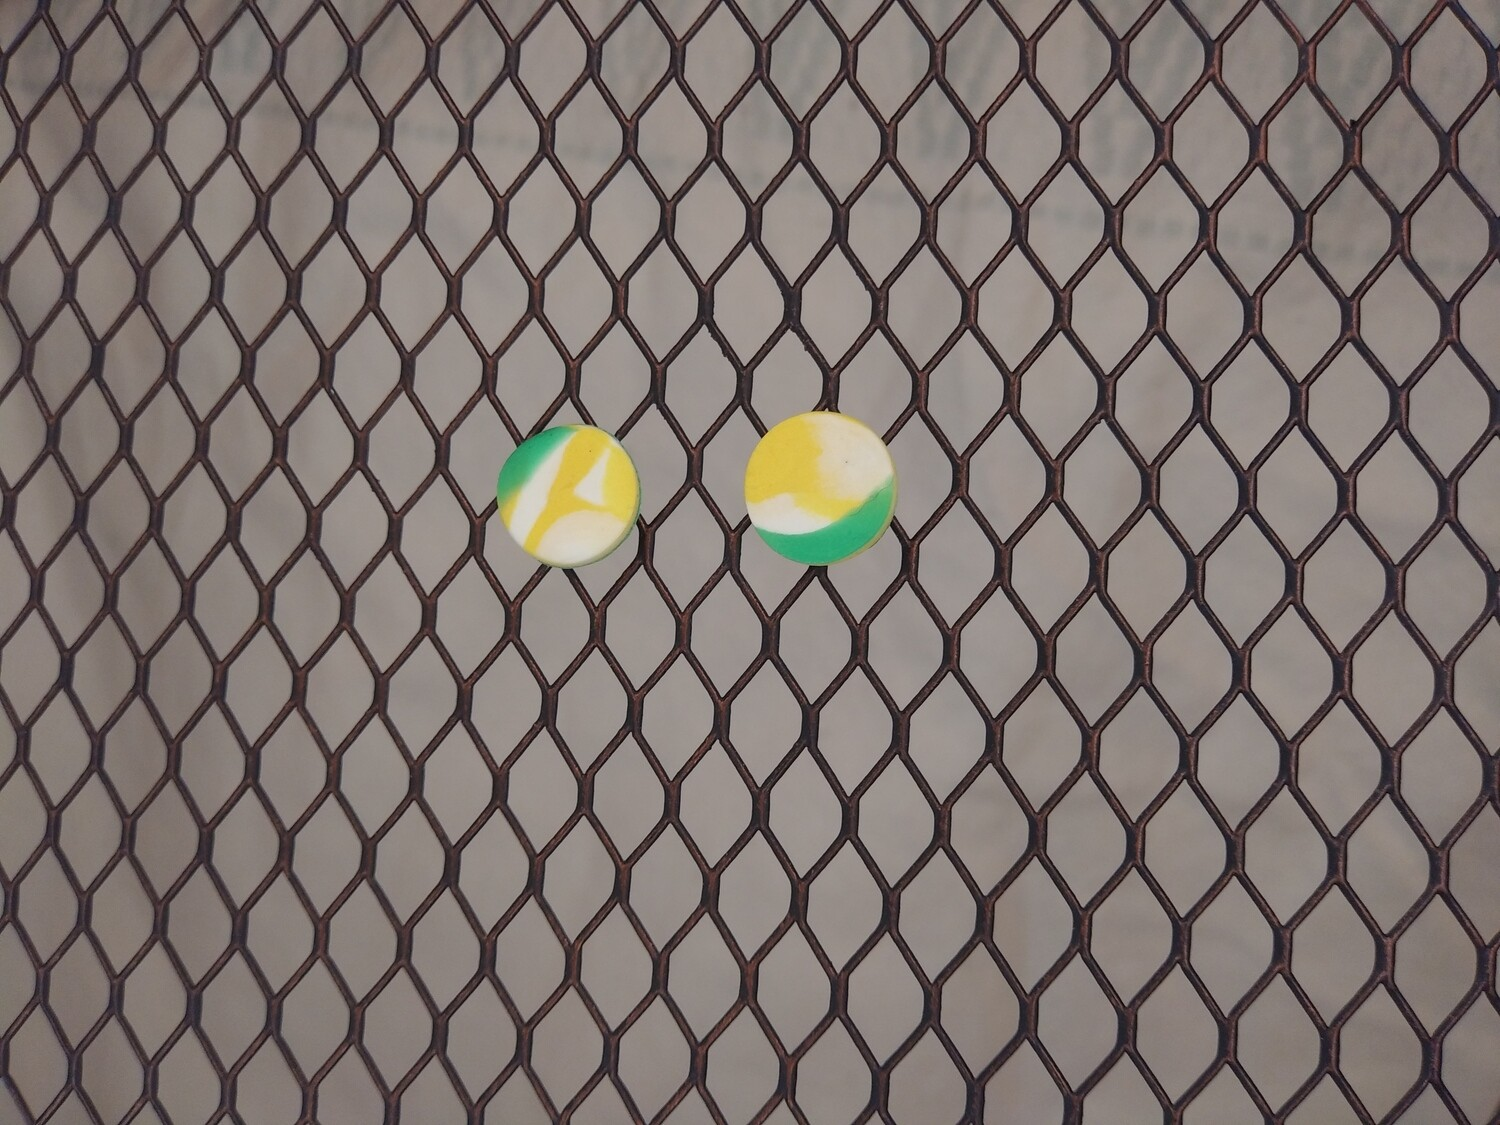 Yellow and green Round stud earrings